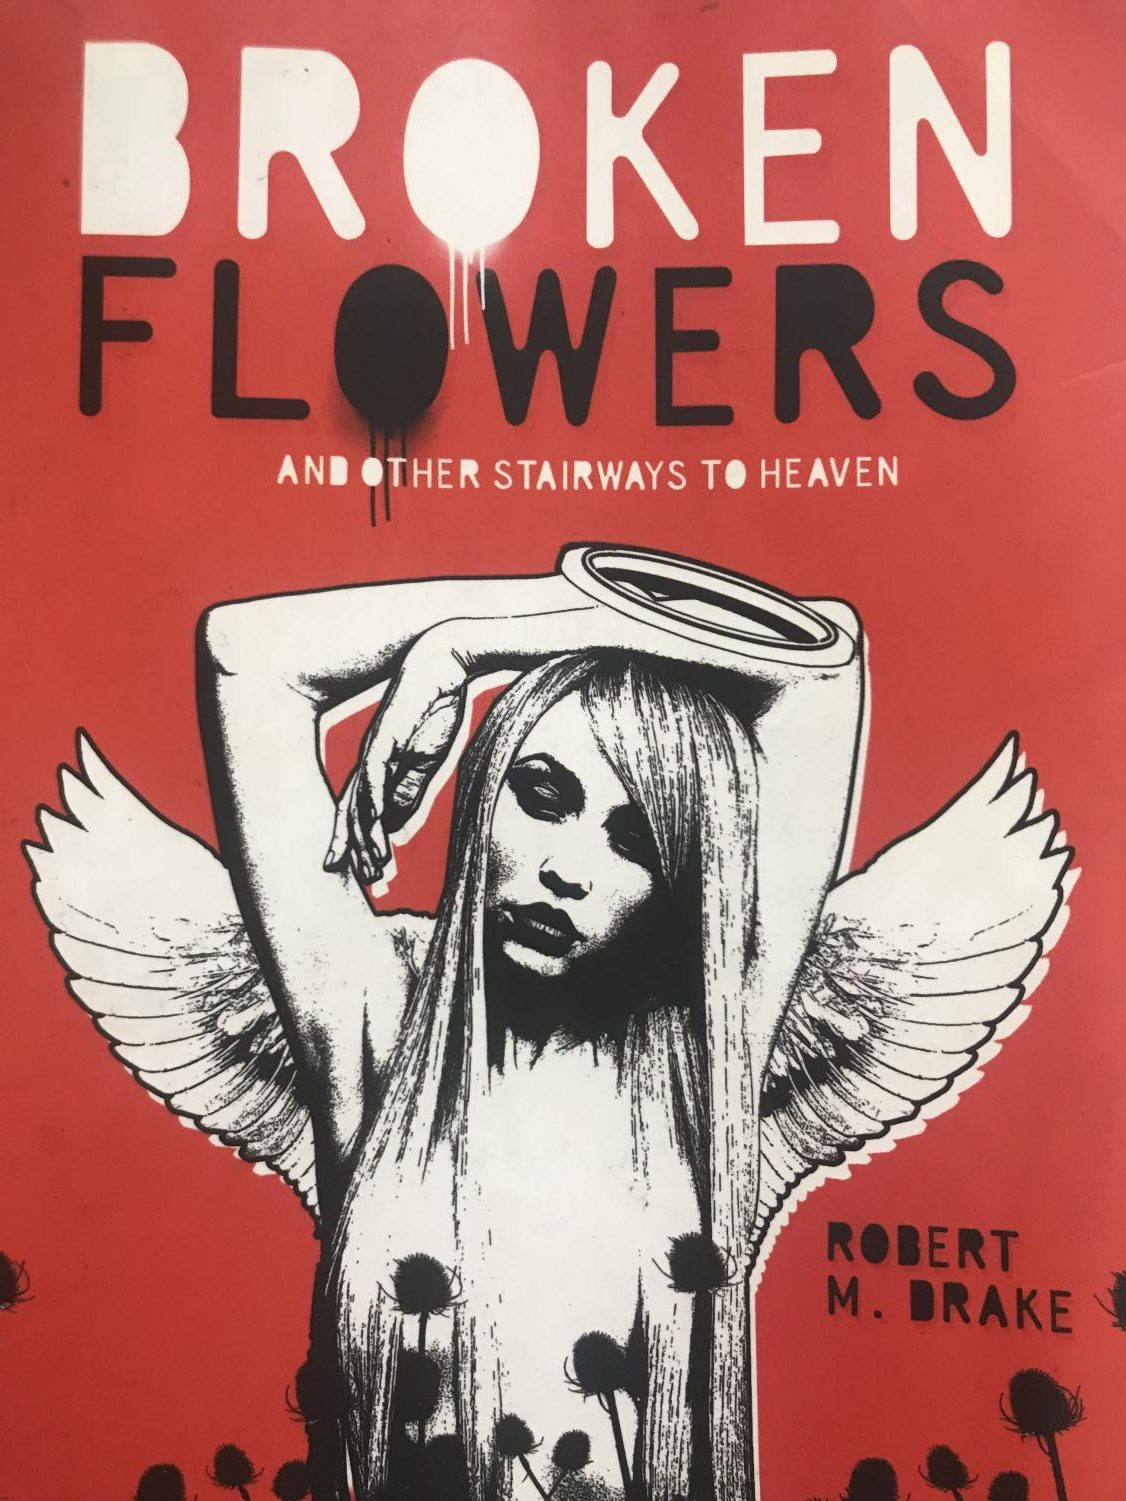 The book cover for 'Broken Flowers and Other Strairways to Heaven' by Robert M. Drake.